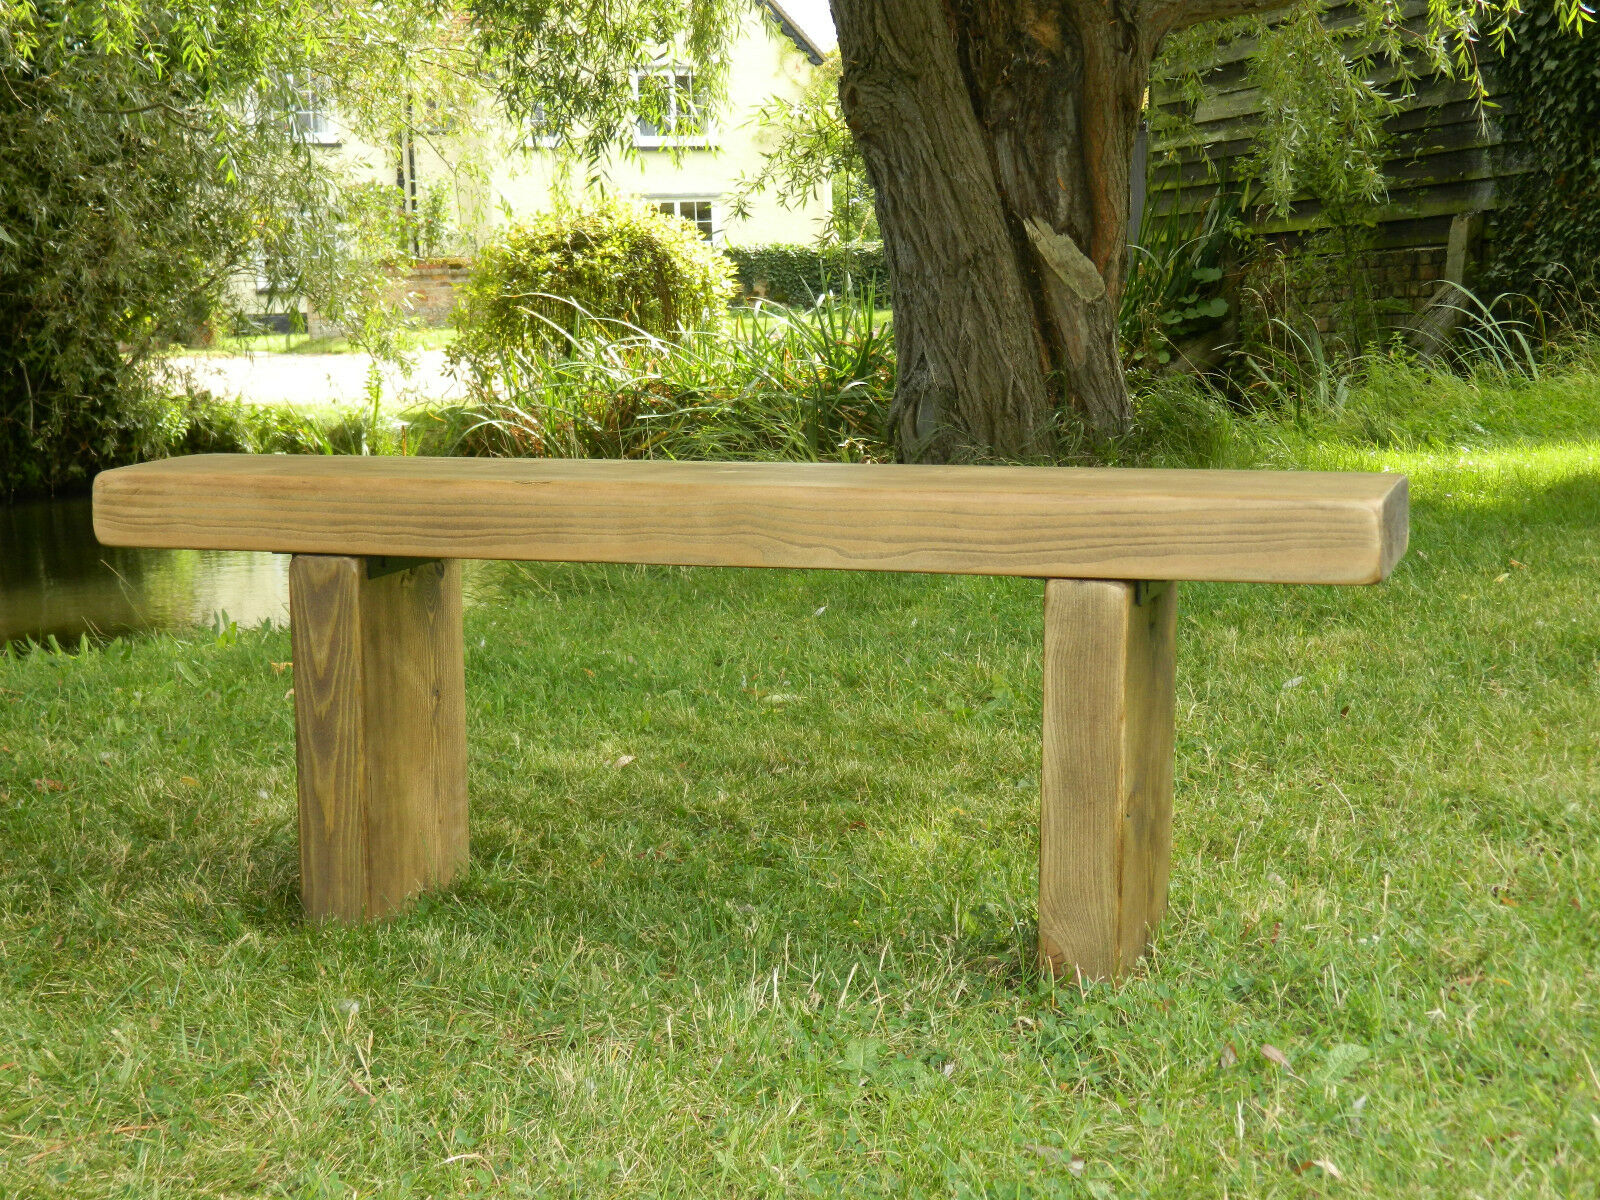 Solid Wood Garden Bench Chunky Rustic Pine Farmhouse Wooden Dining Seat Picclick Uk